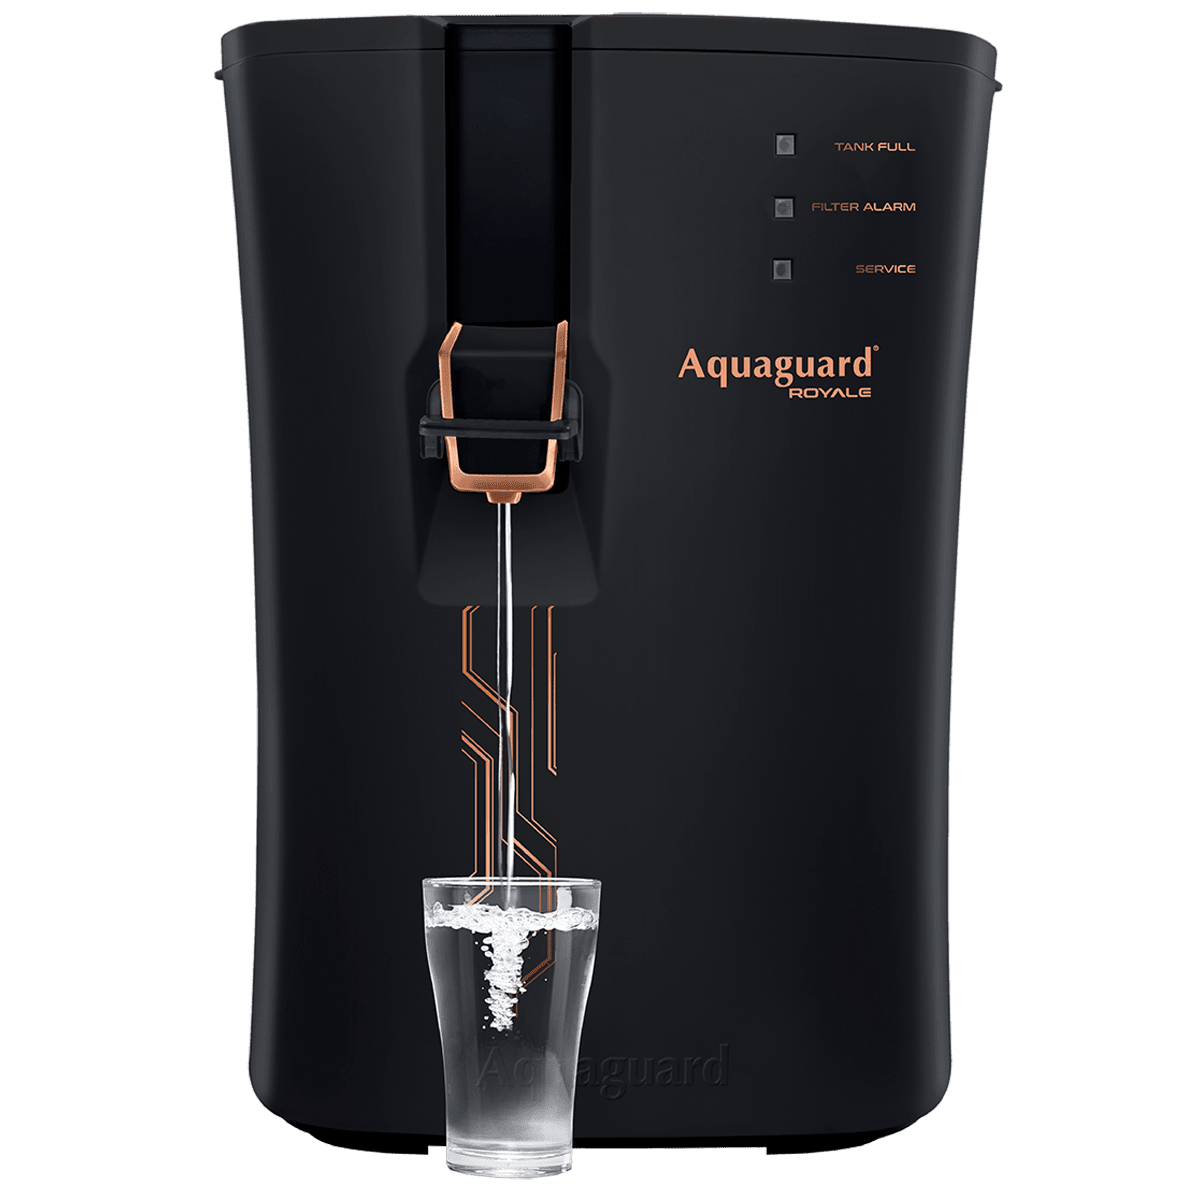 Aquaguard Royale RO+UV+SS+ZPP Electrical Water Purifier (Mineral Enhancer, Black/Copper)